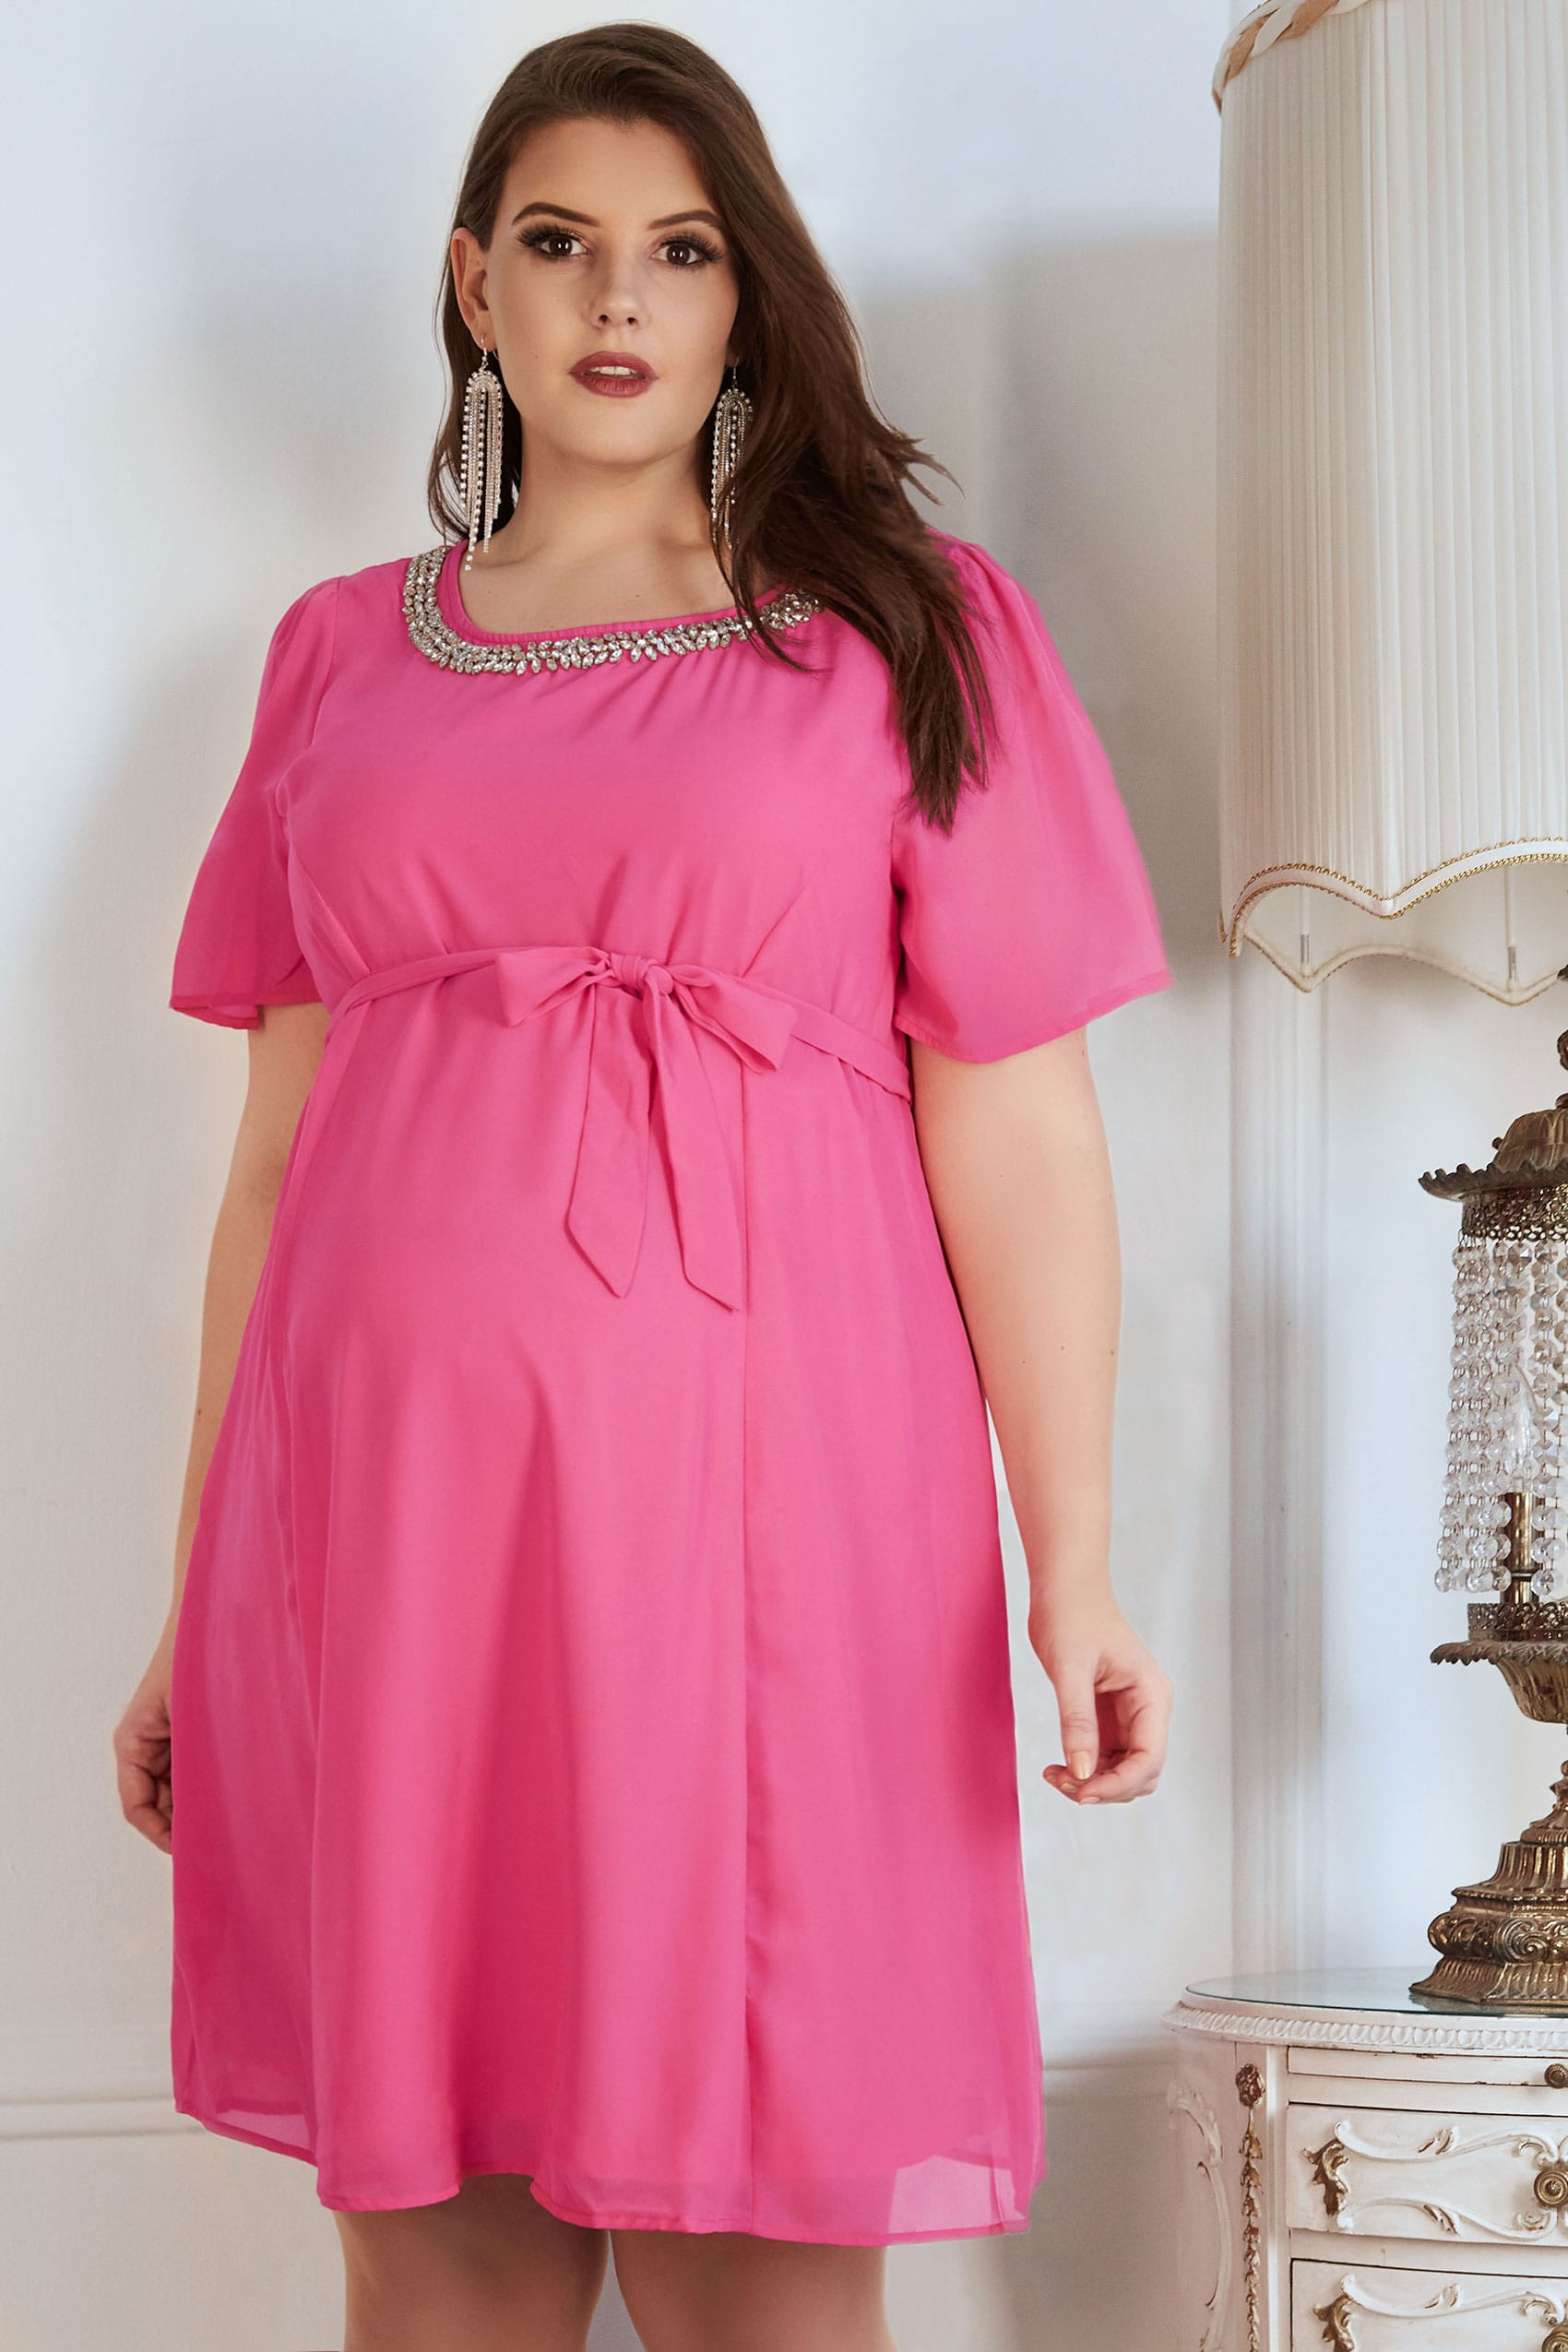 958aab5fd9e BUMP IT UP MATERNITY Pink Chiffon Dress With Jewel Embellished Neckline    Self Tie Waist